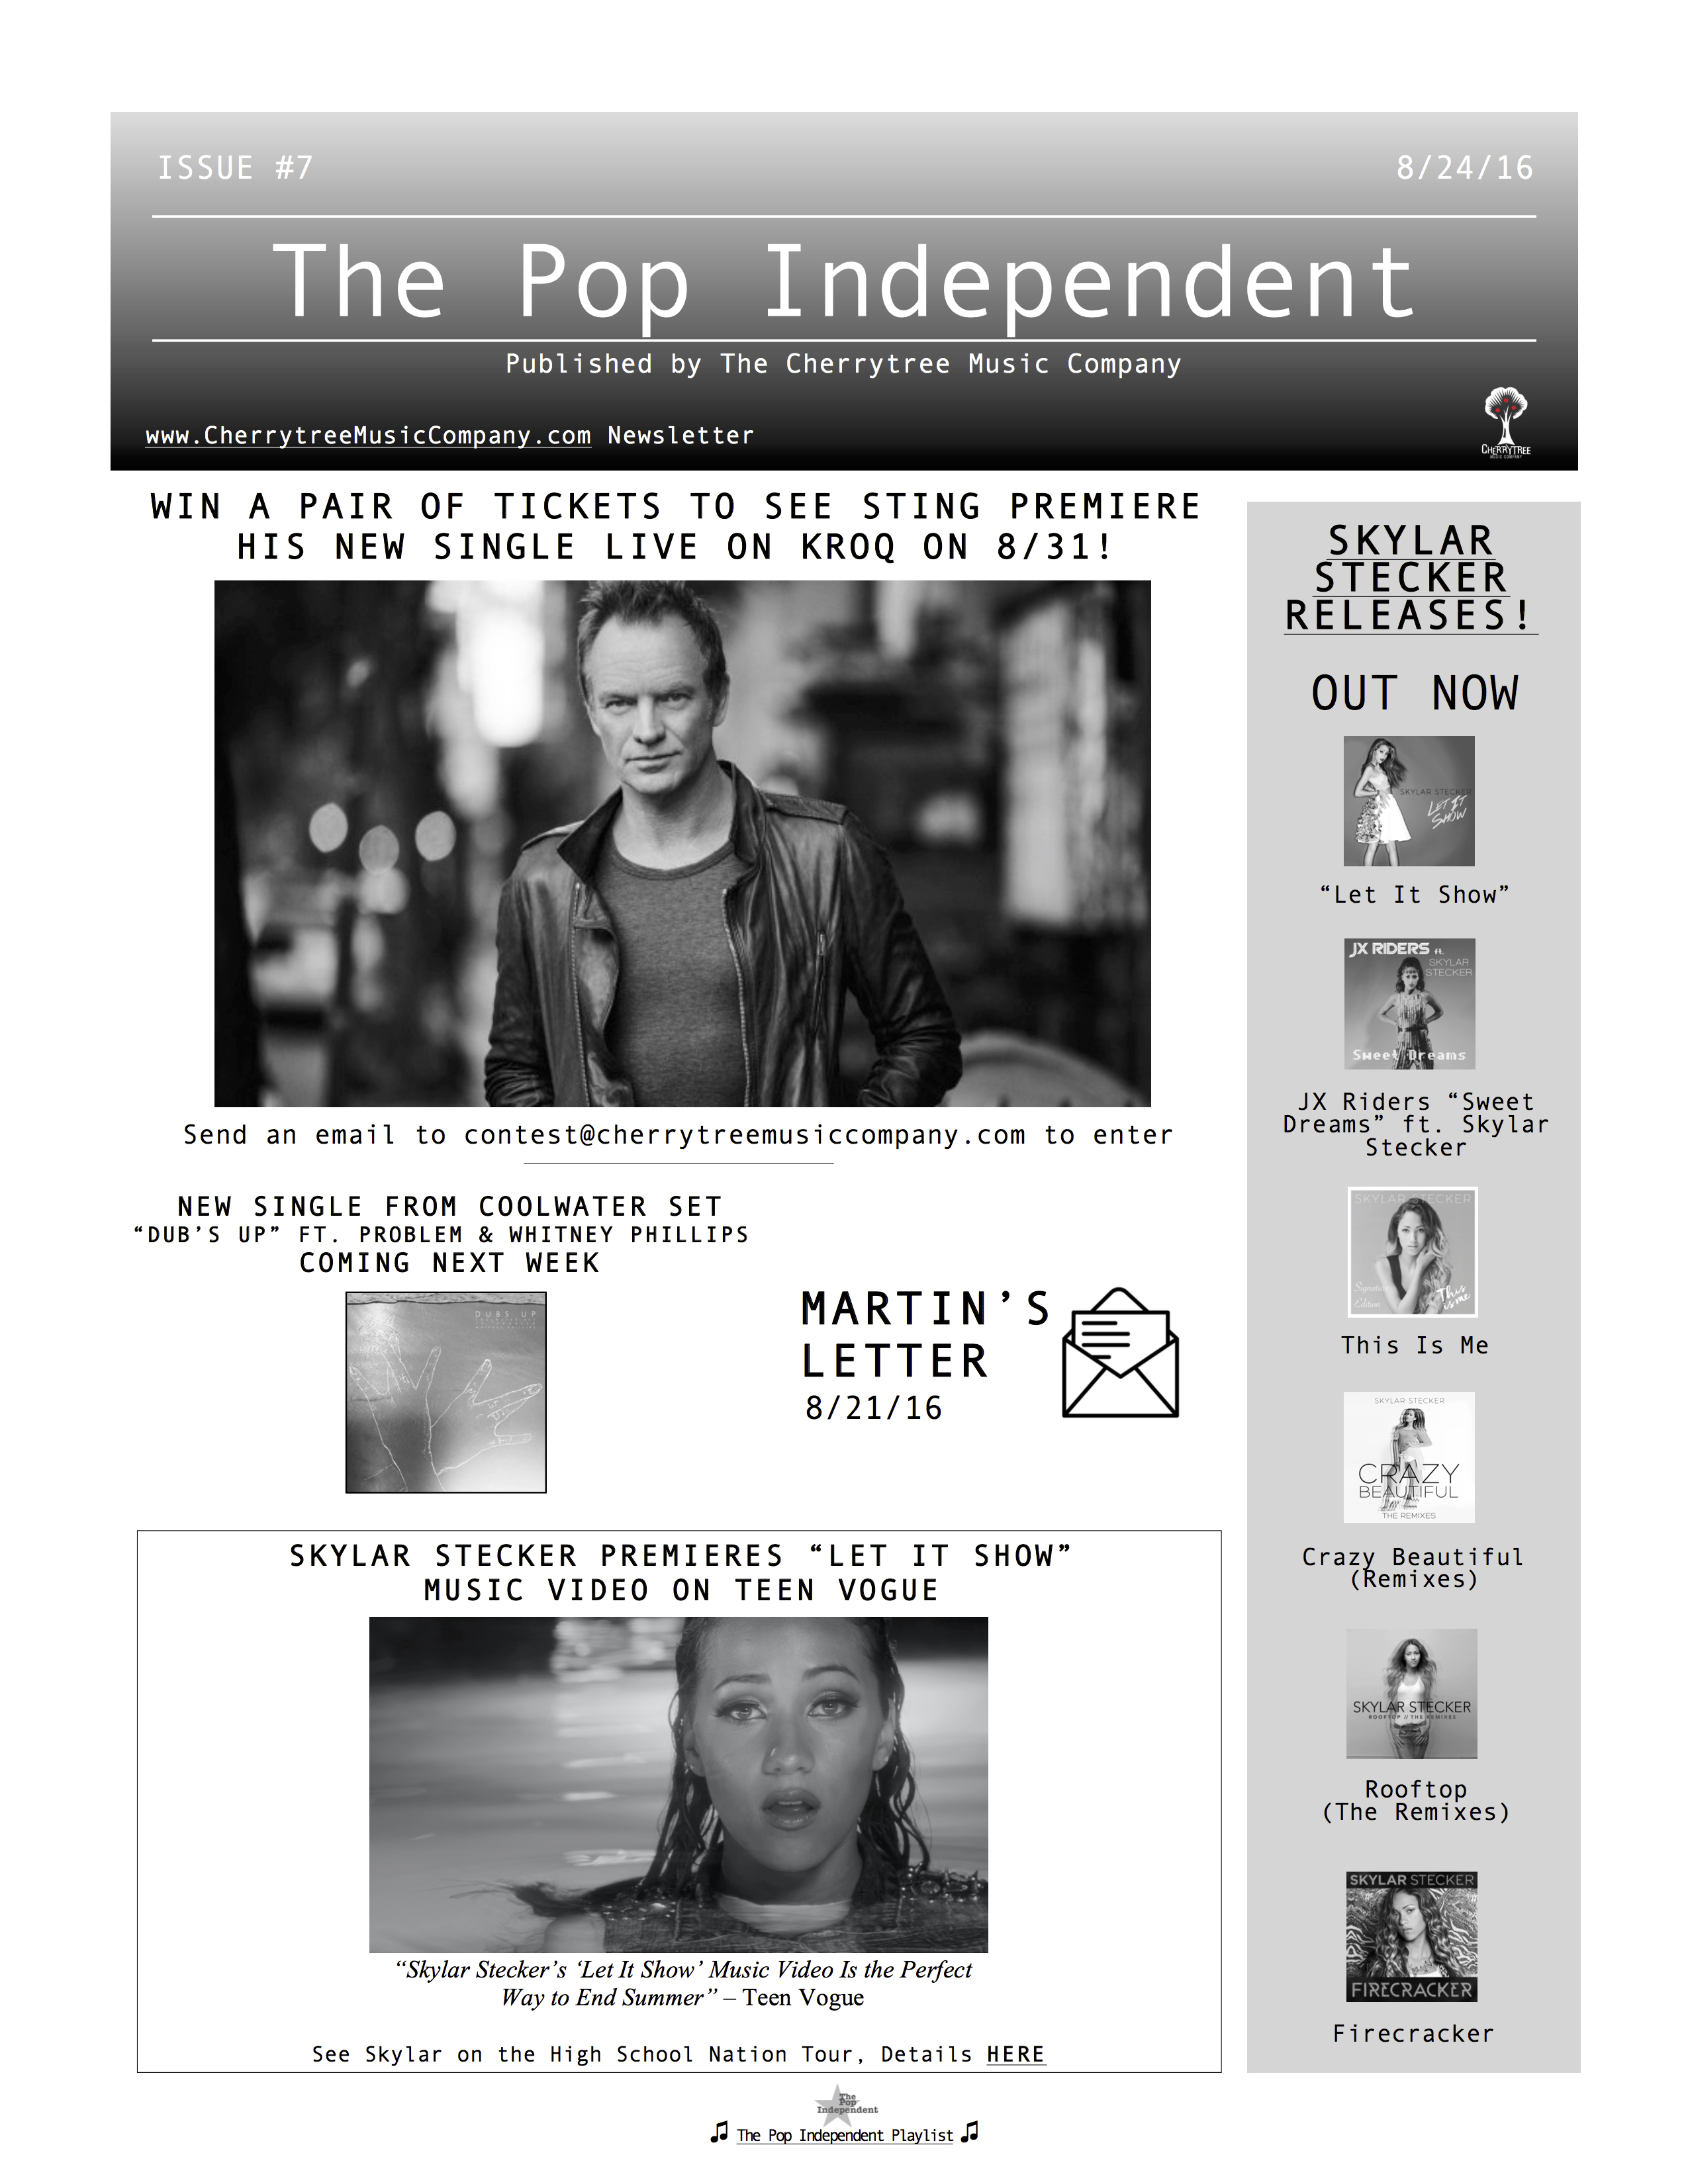 The Pop Independent, issue 7